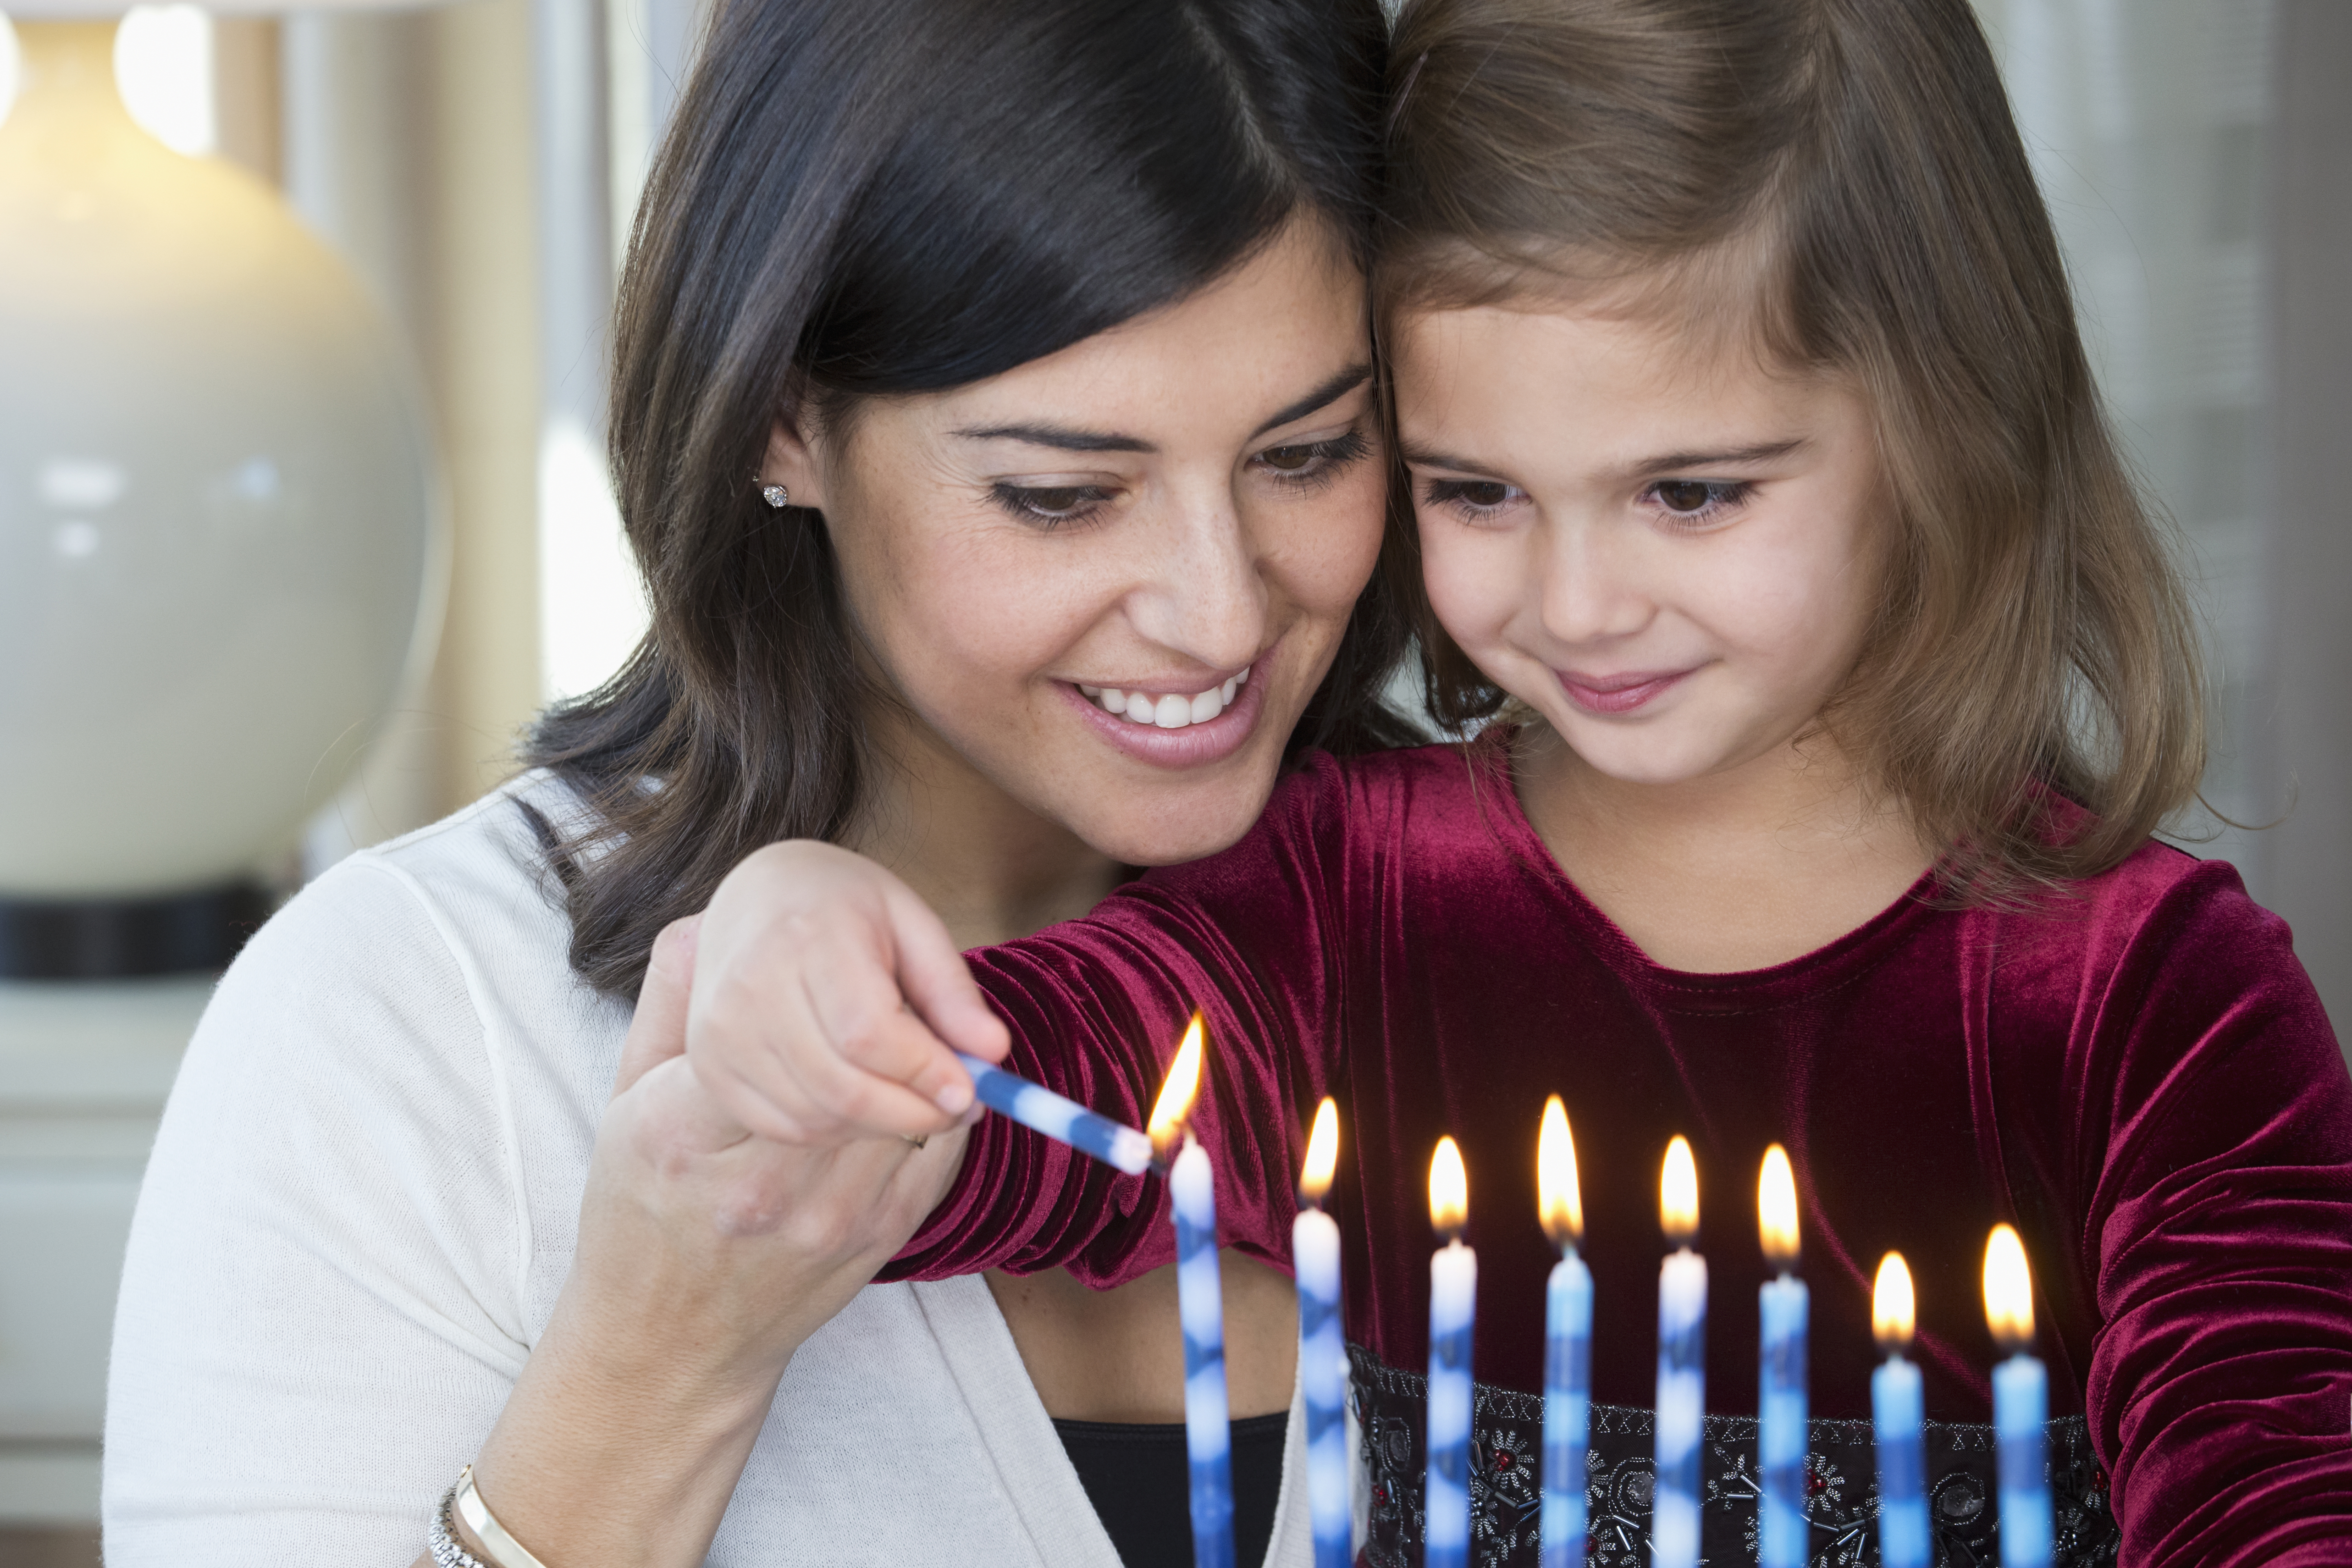 A mother and daughter lighting candles on a Hanukkah menorah. (Getty Images)